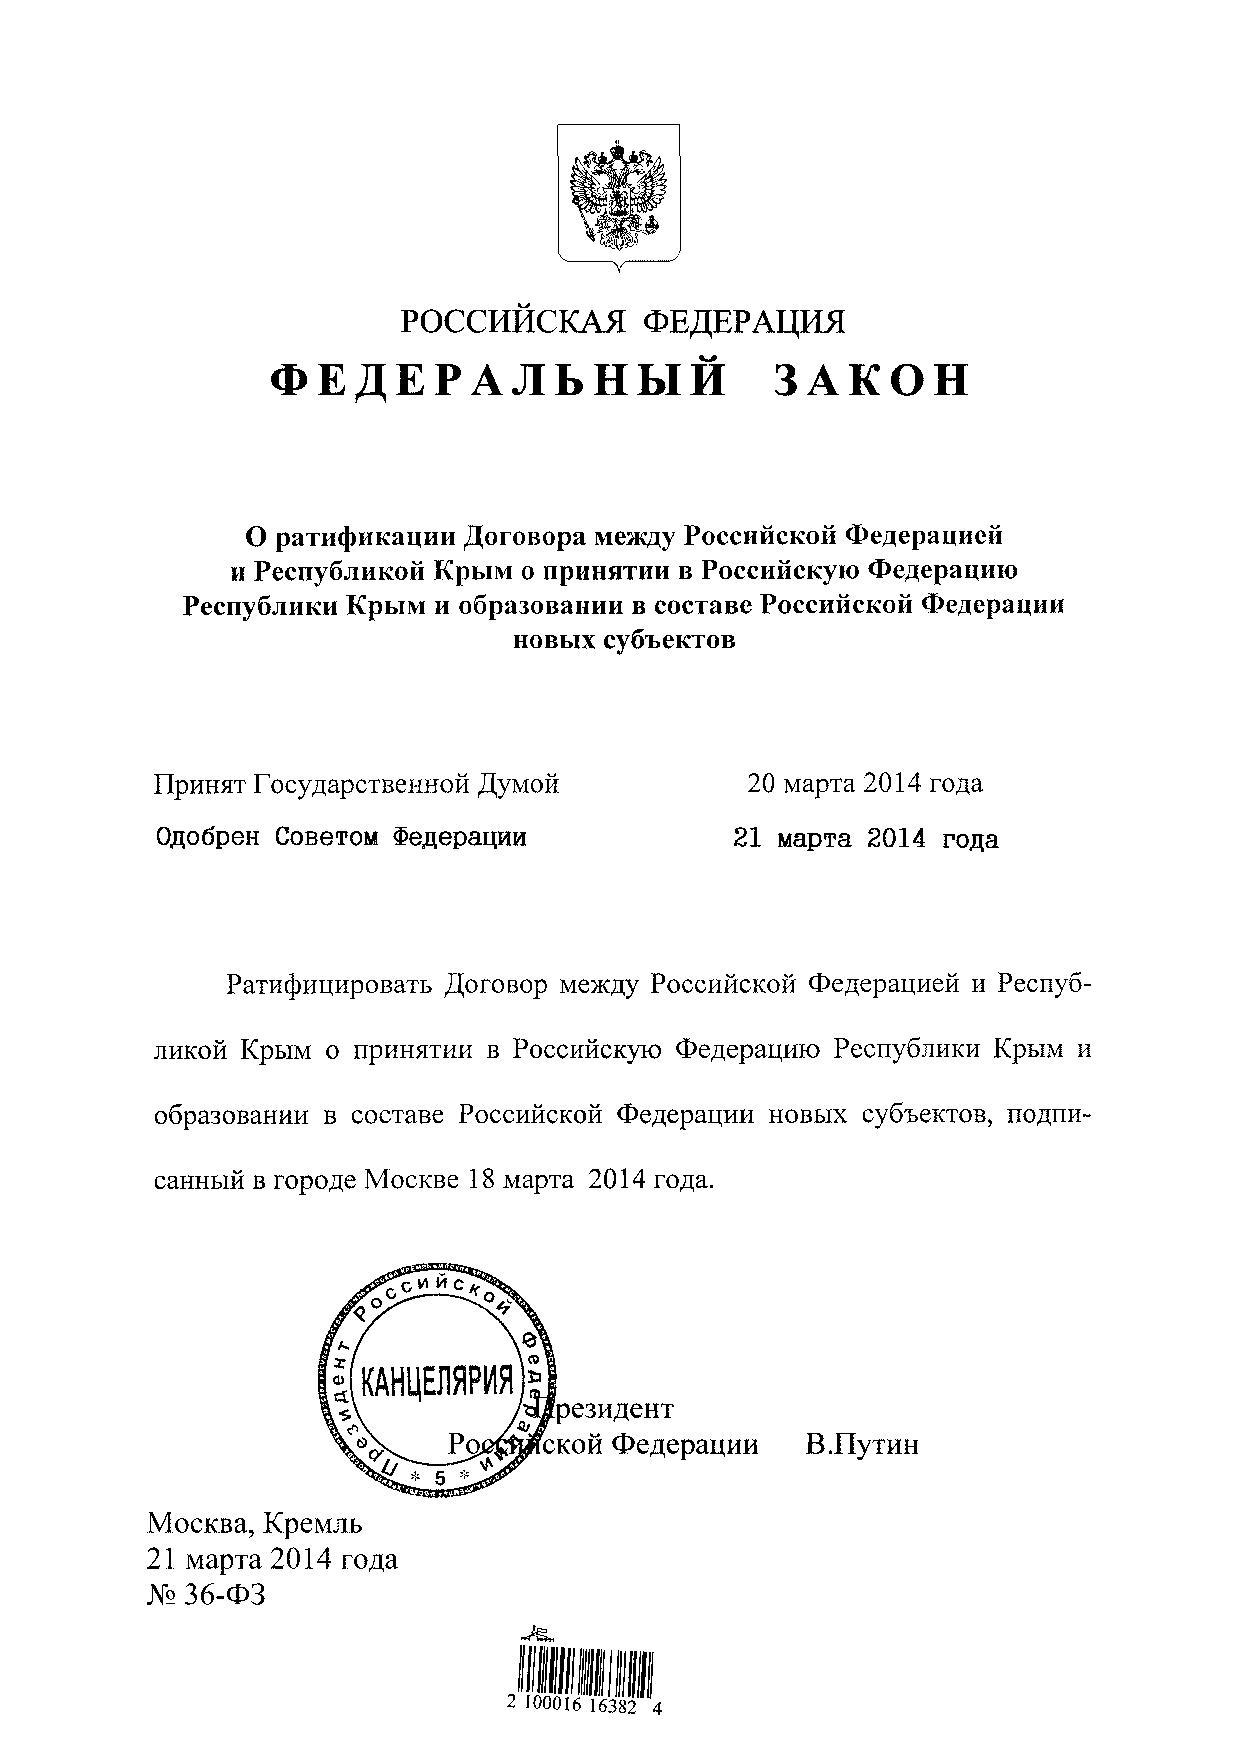 File:Federal Law On Ratifying The Agreement Between The Russian Federation  And The Republic Of Crimea On Admitting To The Russian Federation.pdf  Business Contract Between Two Parties